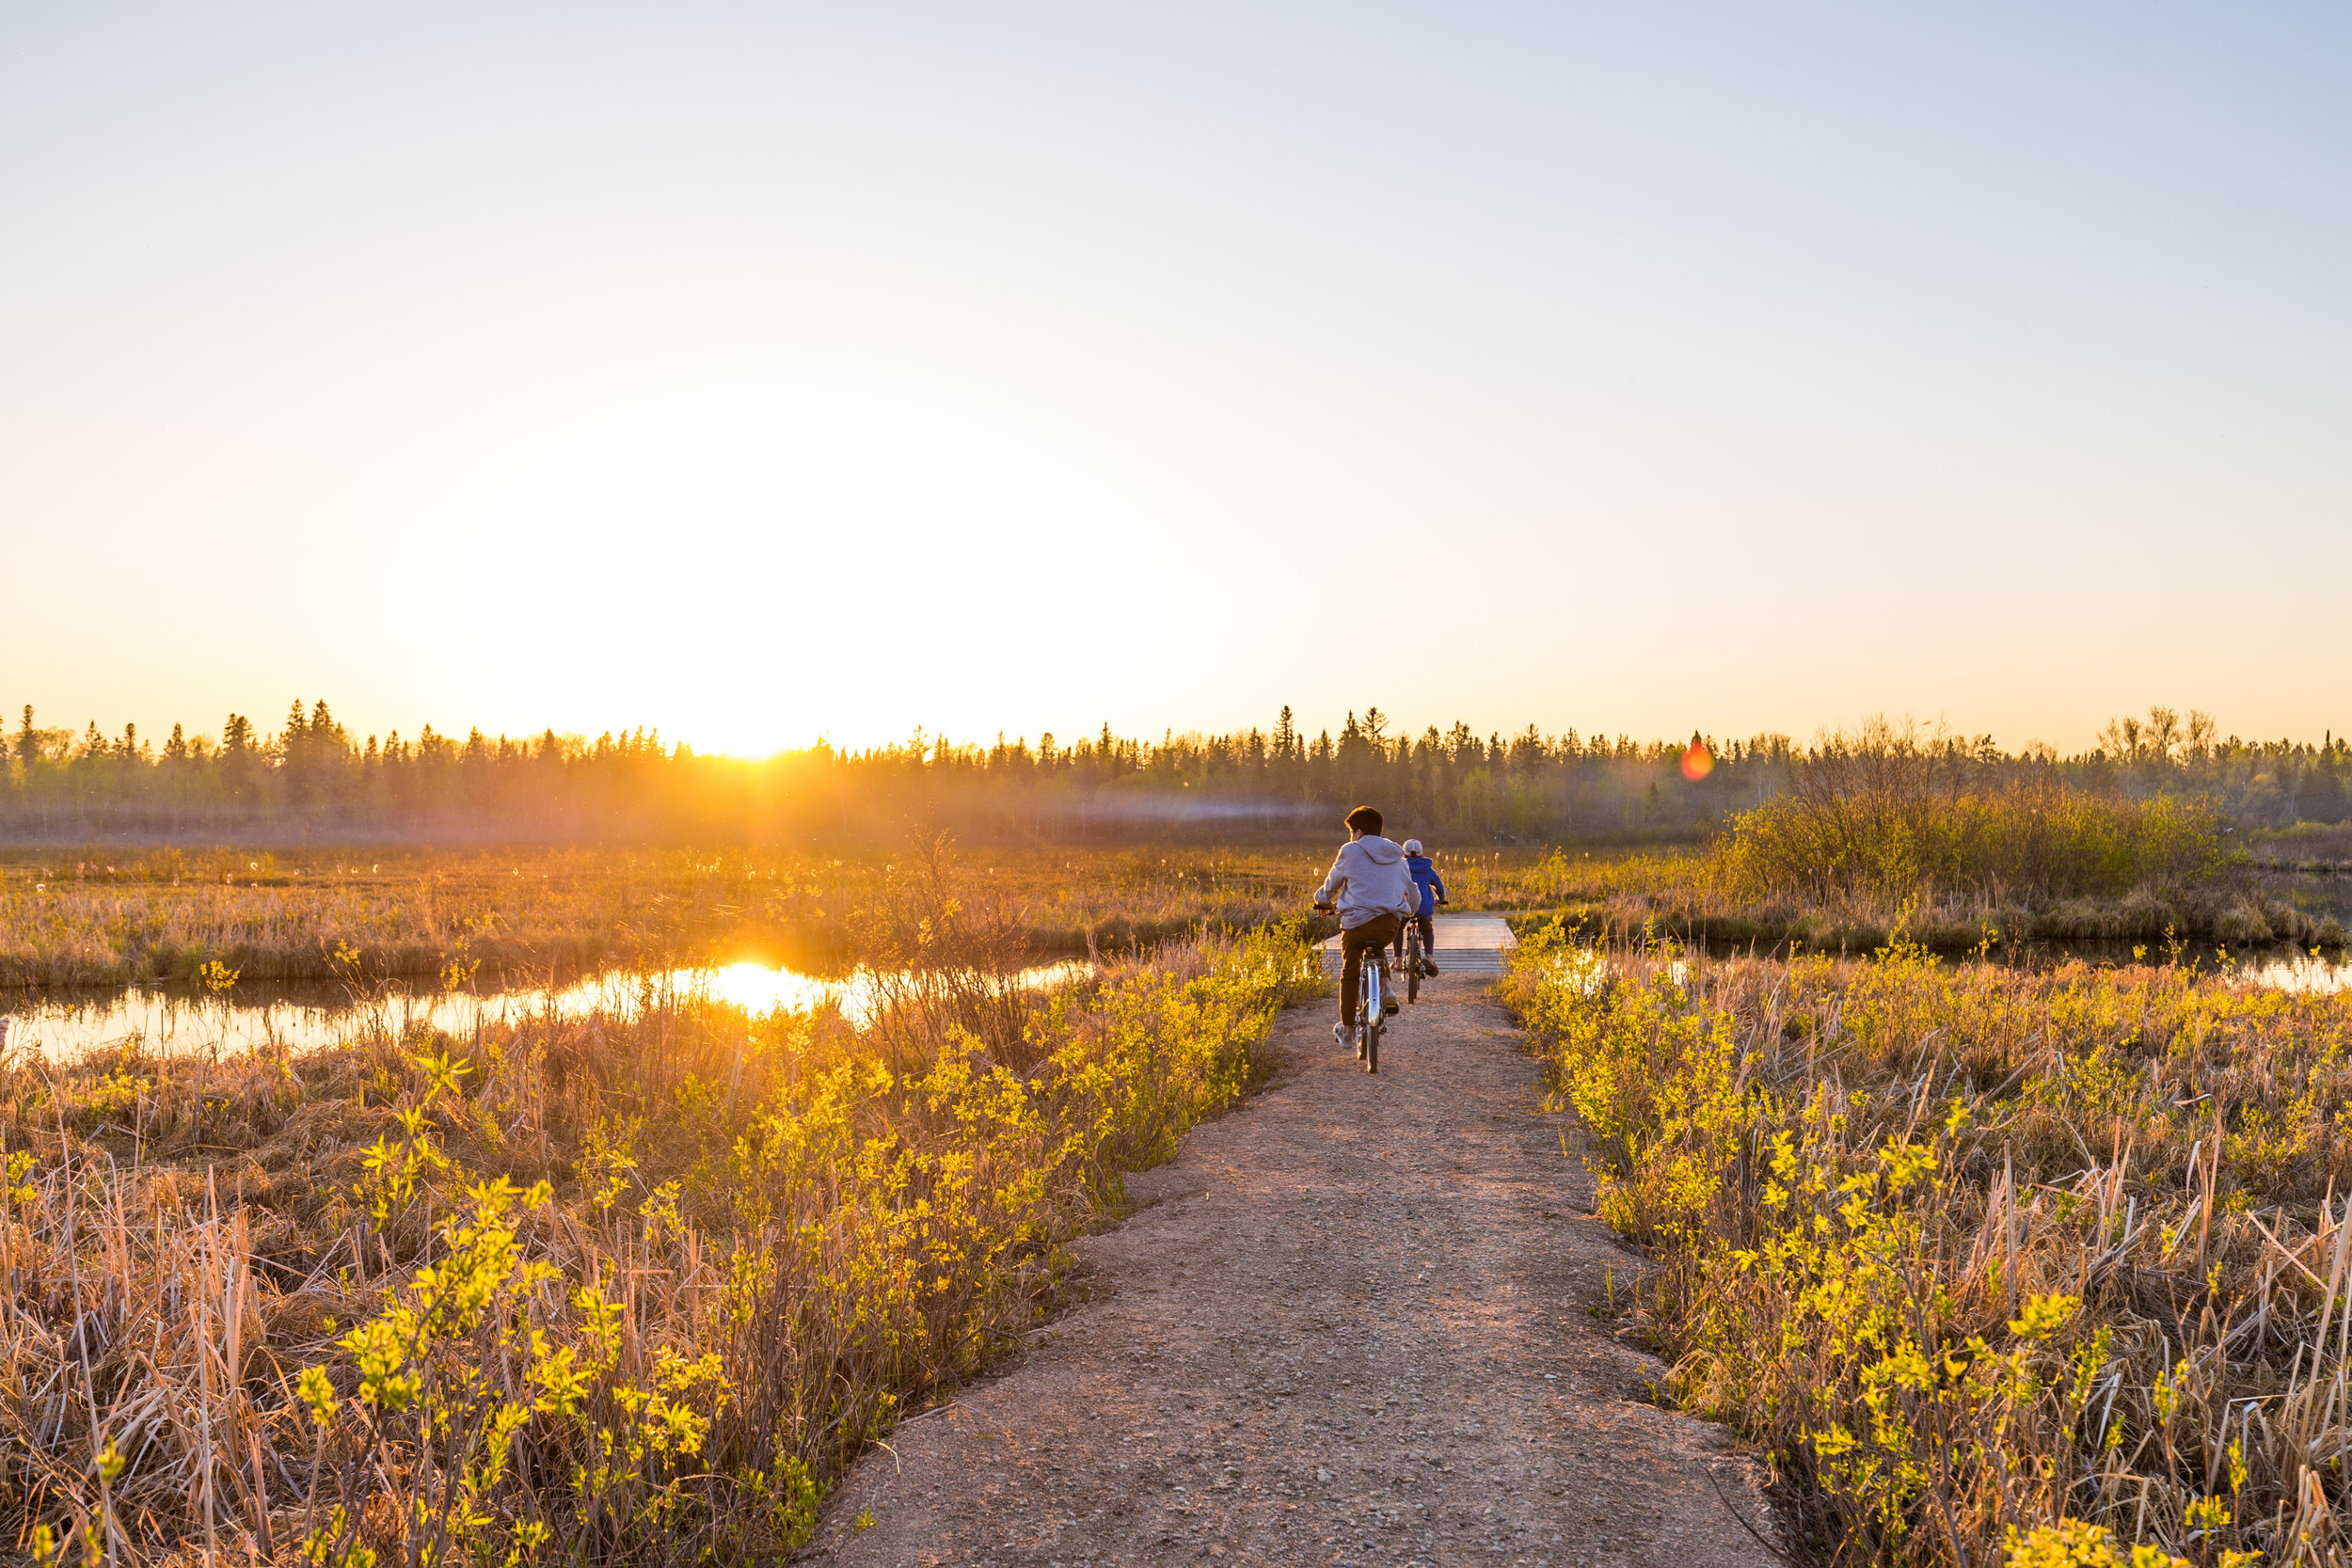 Photograph of the Marsh Trail by local cottager Breanne Hearsum of  Hearsum Photography